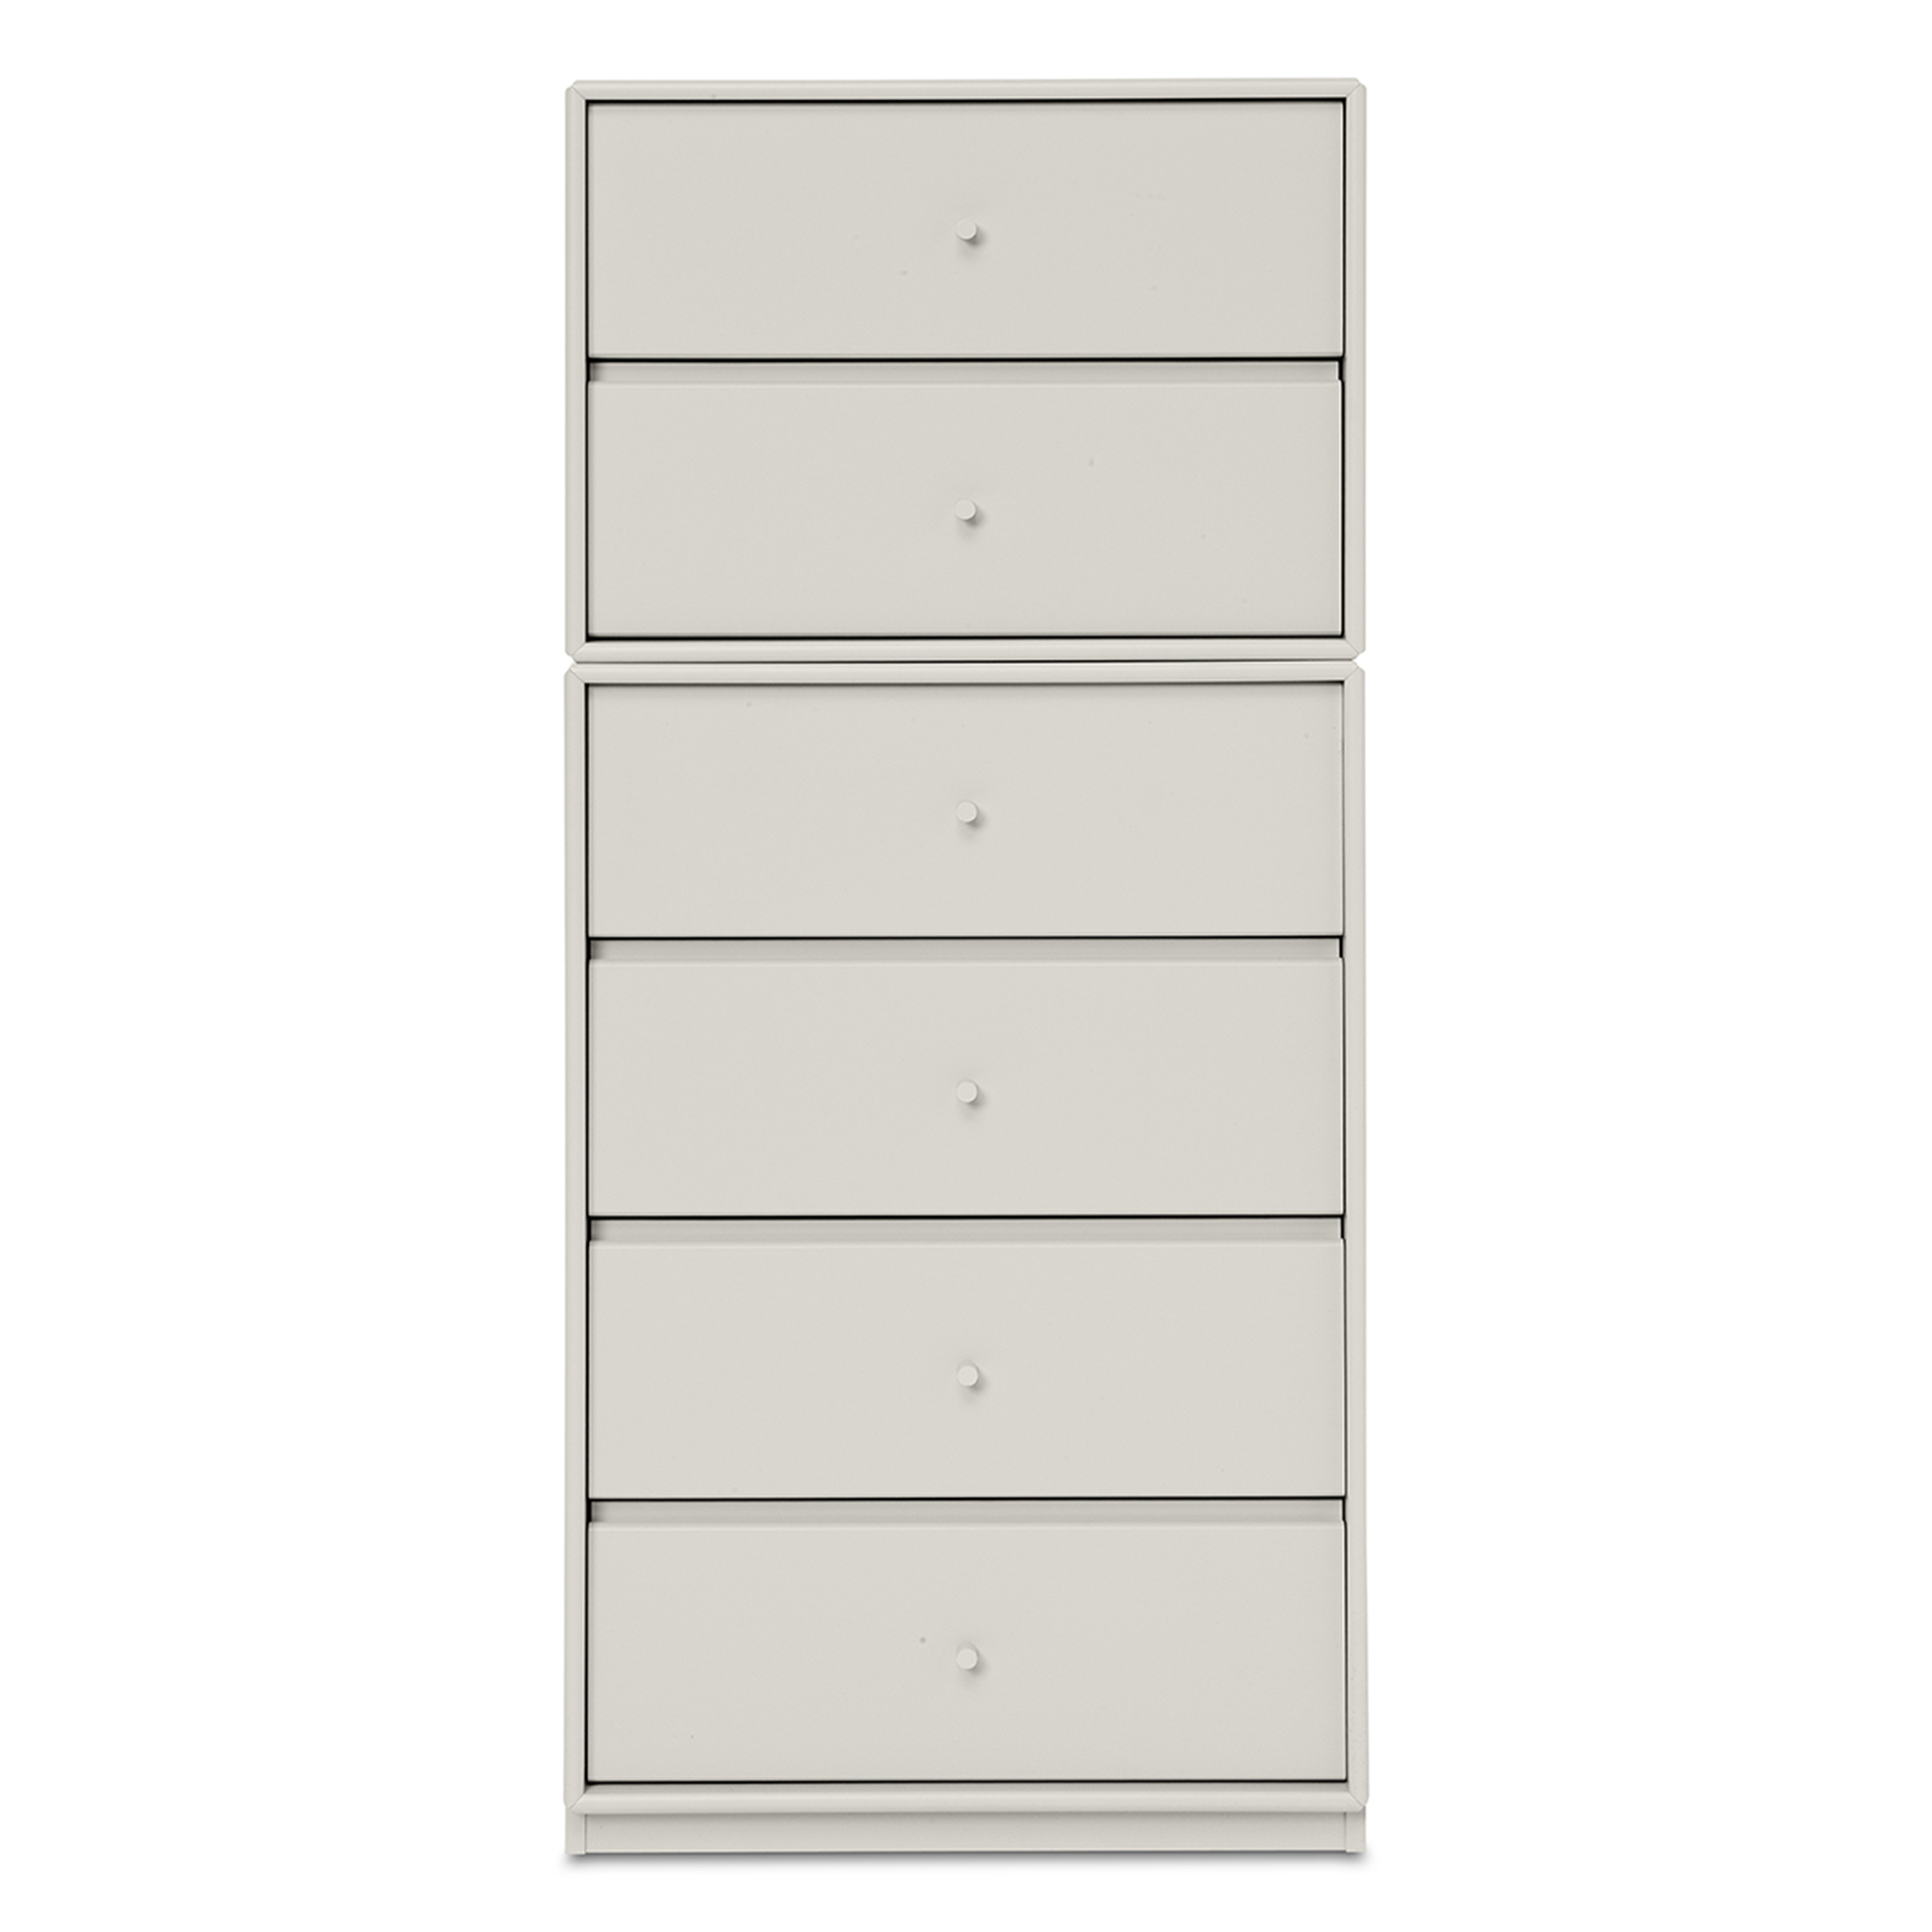 Montana Mobler Archive Cabinet With Drawers Design Peter J